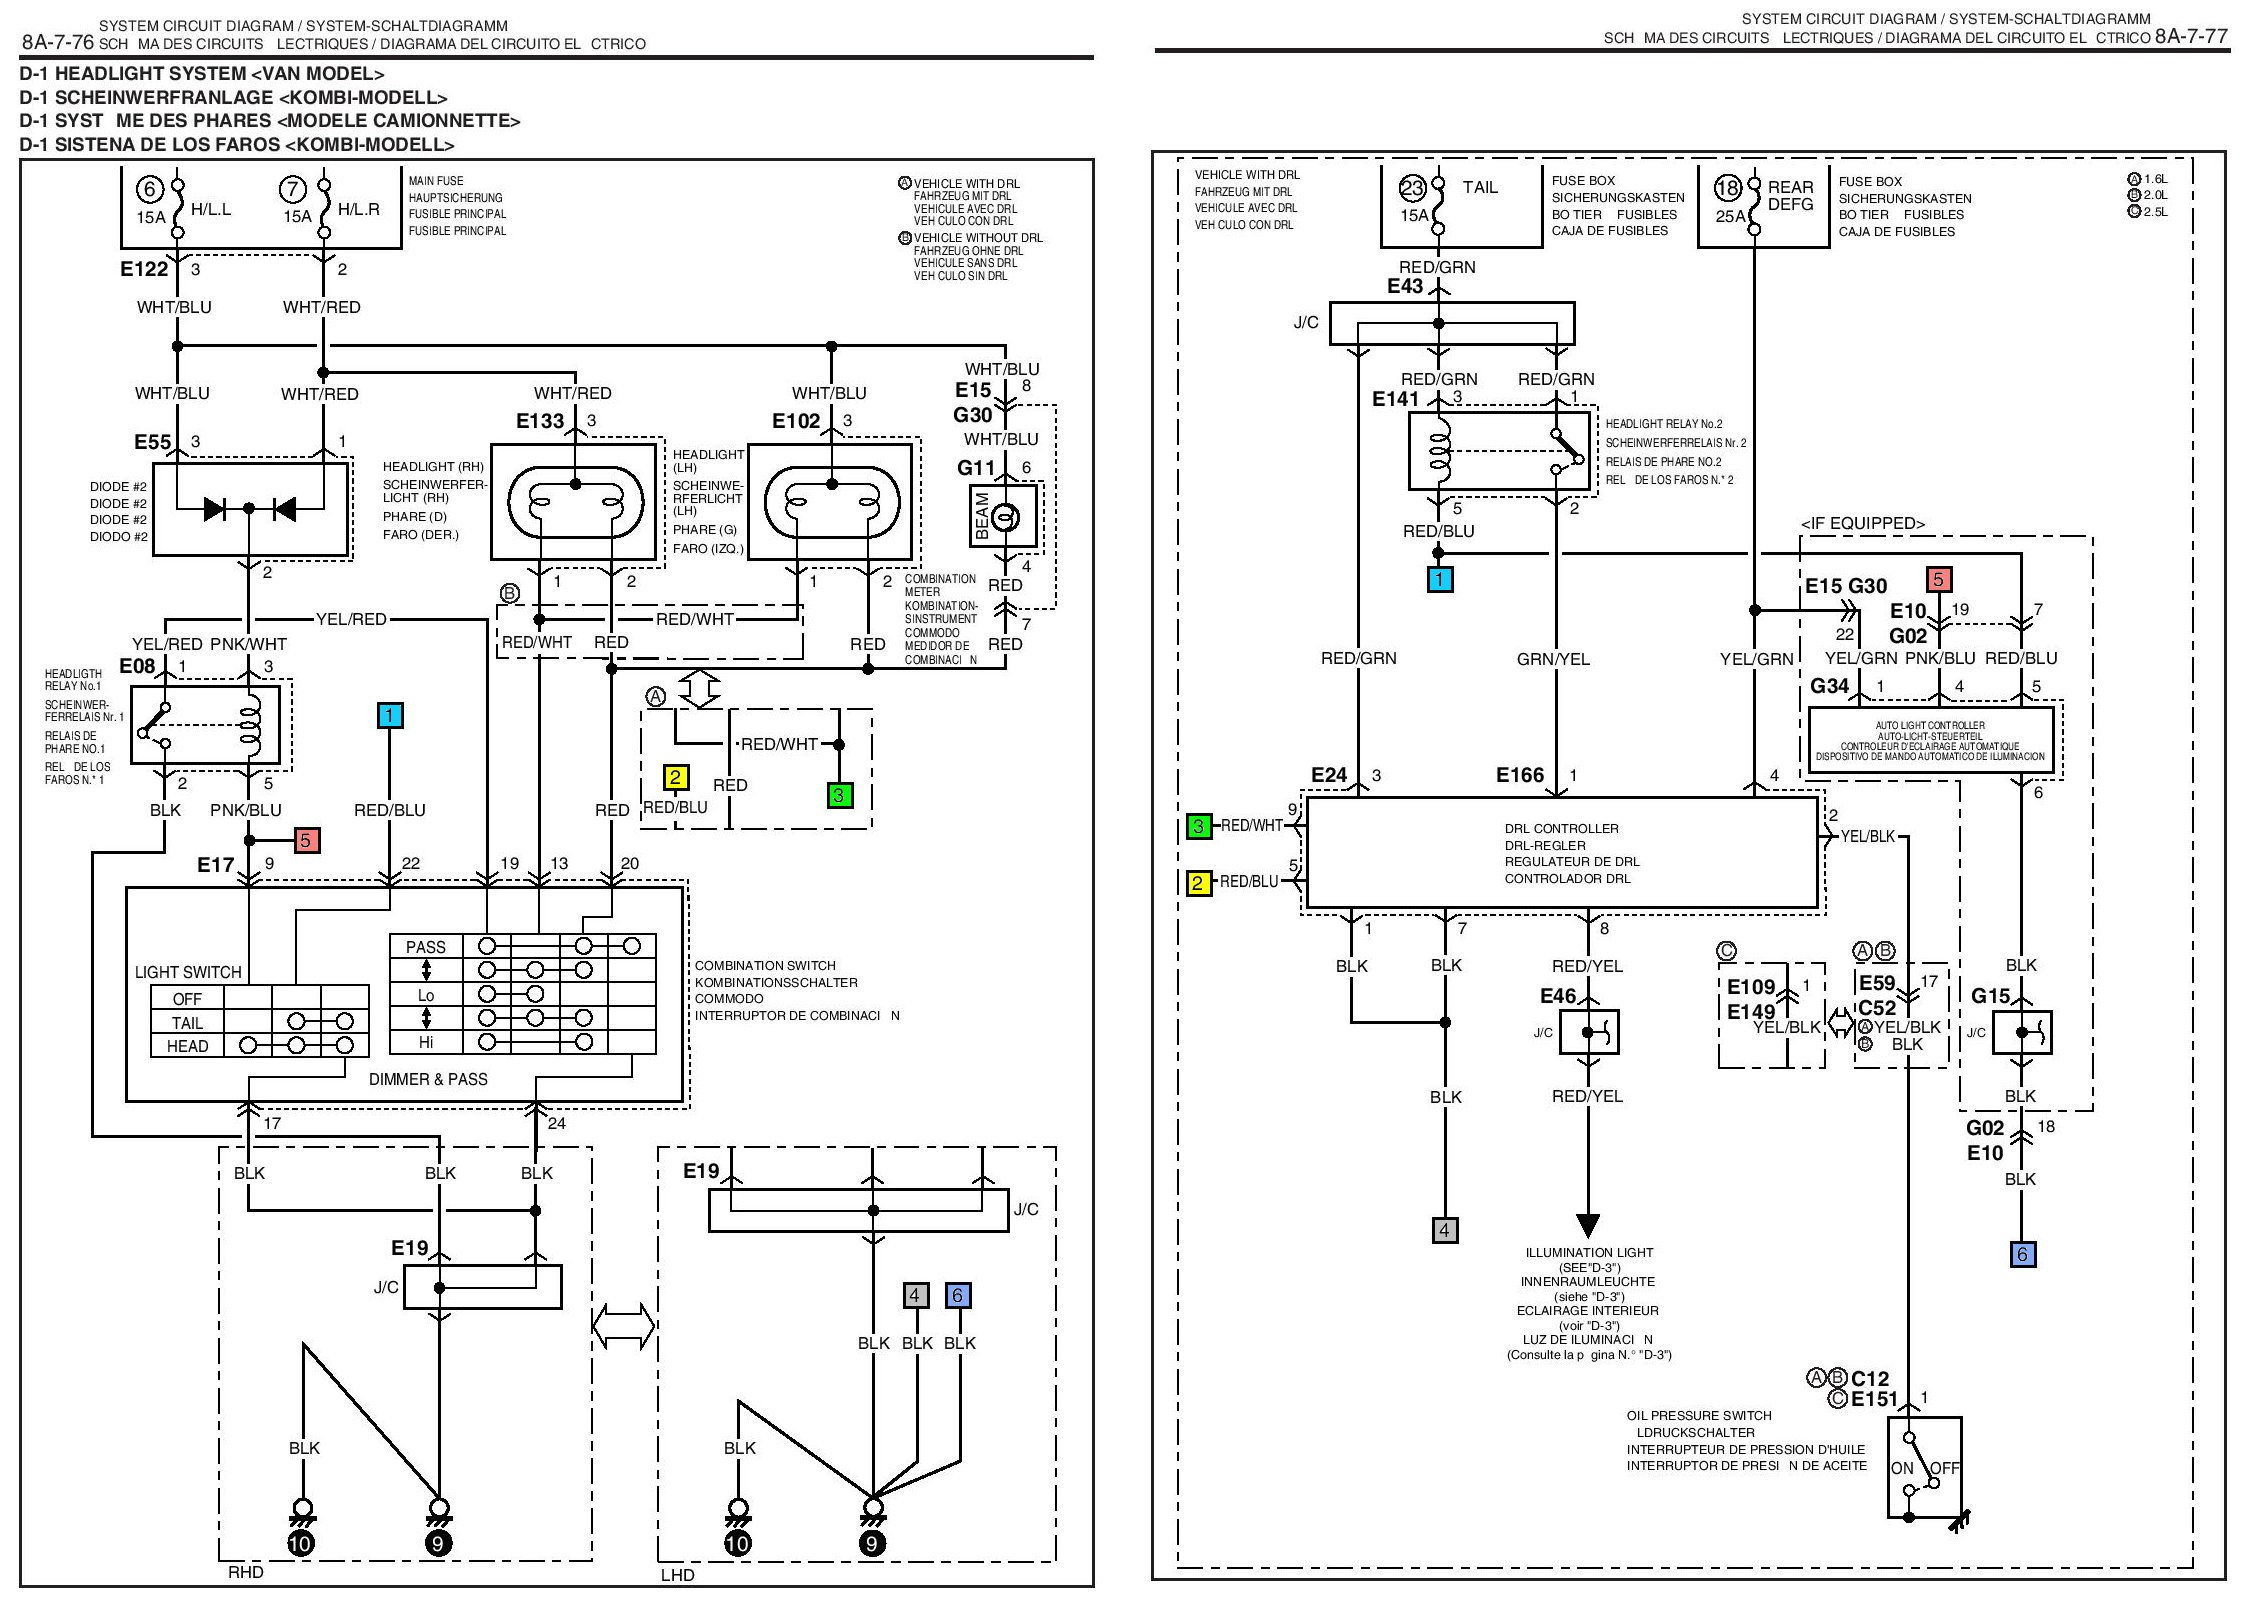 wiring diagram for 2002 suzuki aerio wiring diagram database u2022 rh mokadesign co